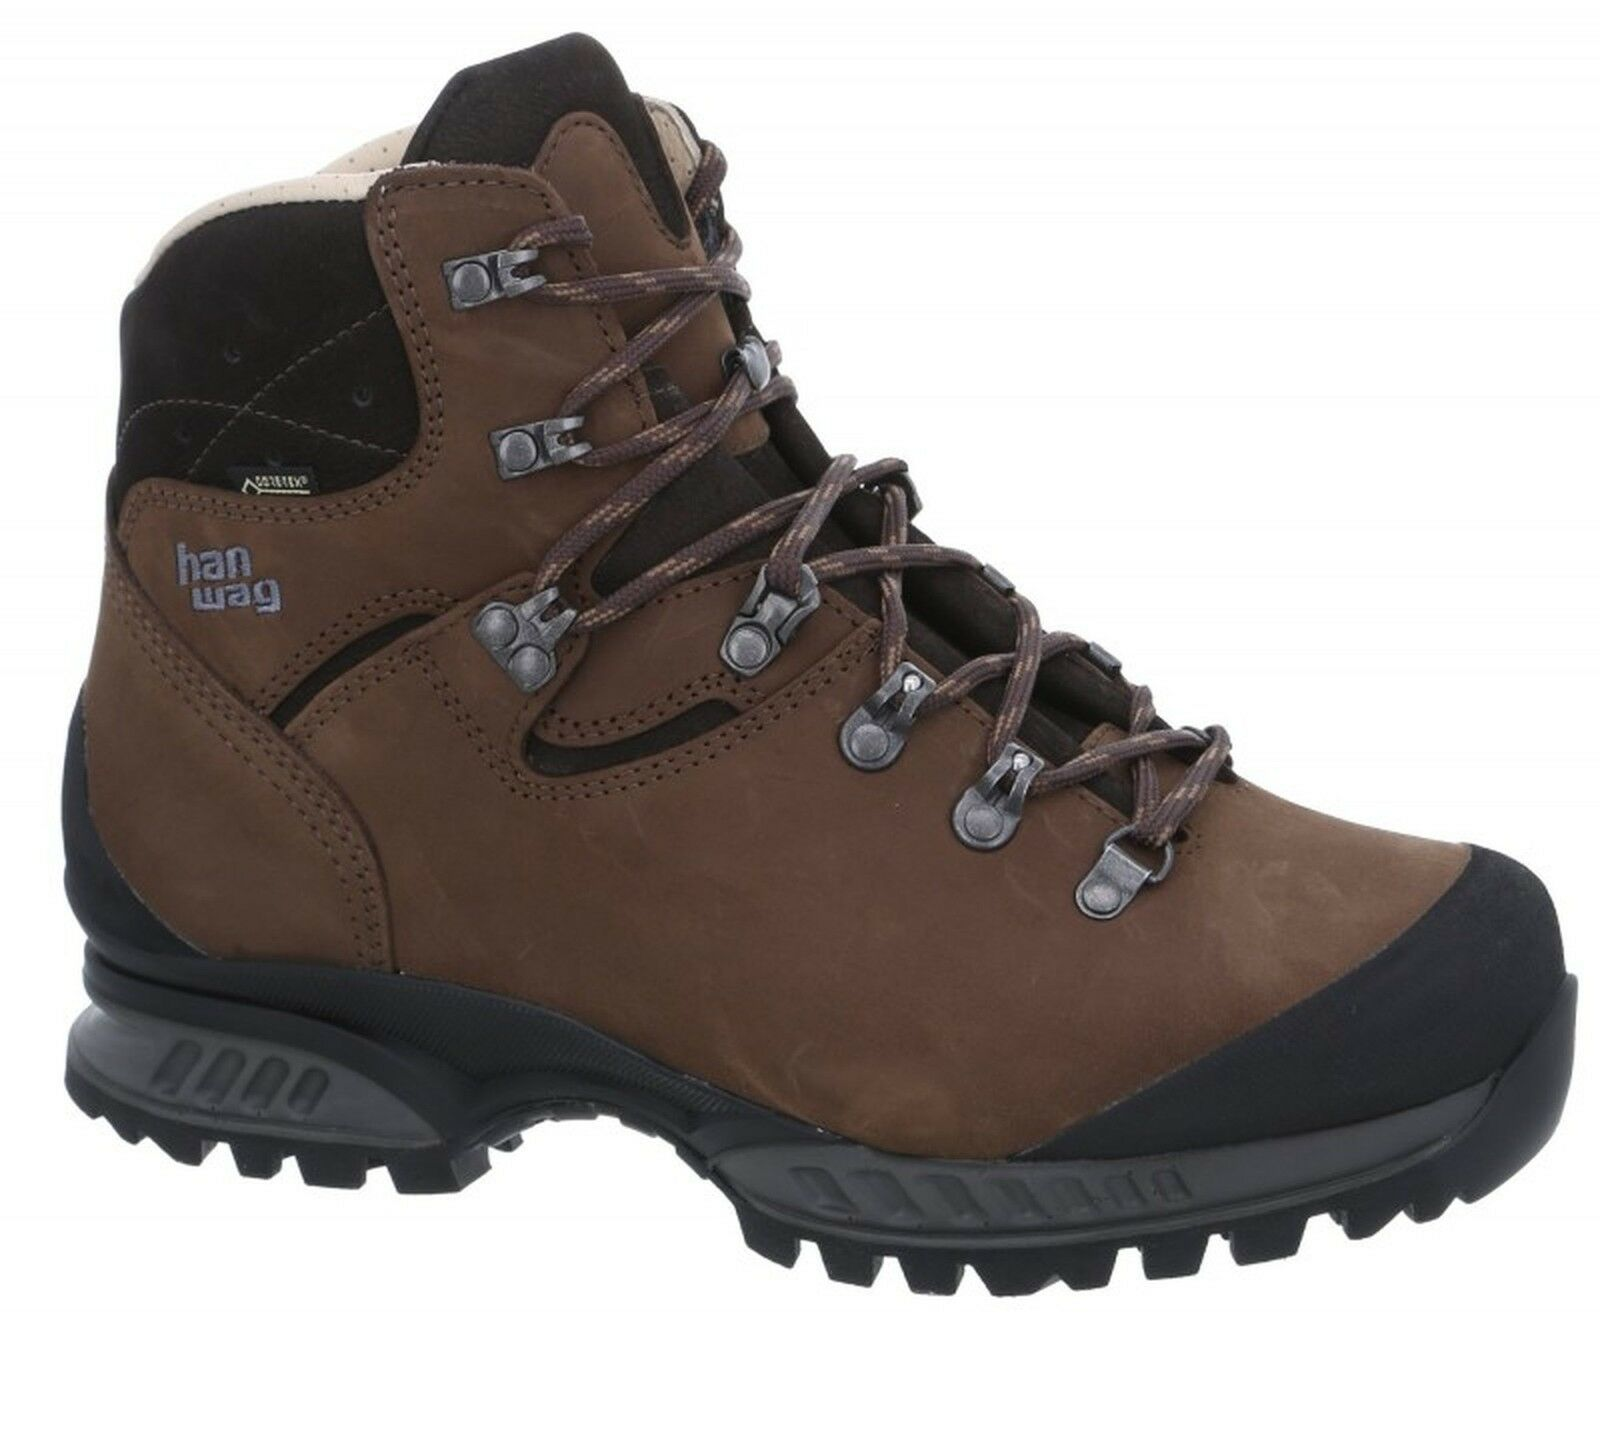 Hanwag Trekking schuhe Tatra II Wide Leather Größe 9 - 43 Earth